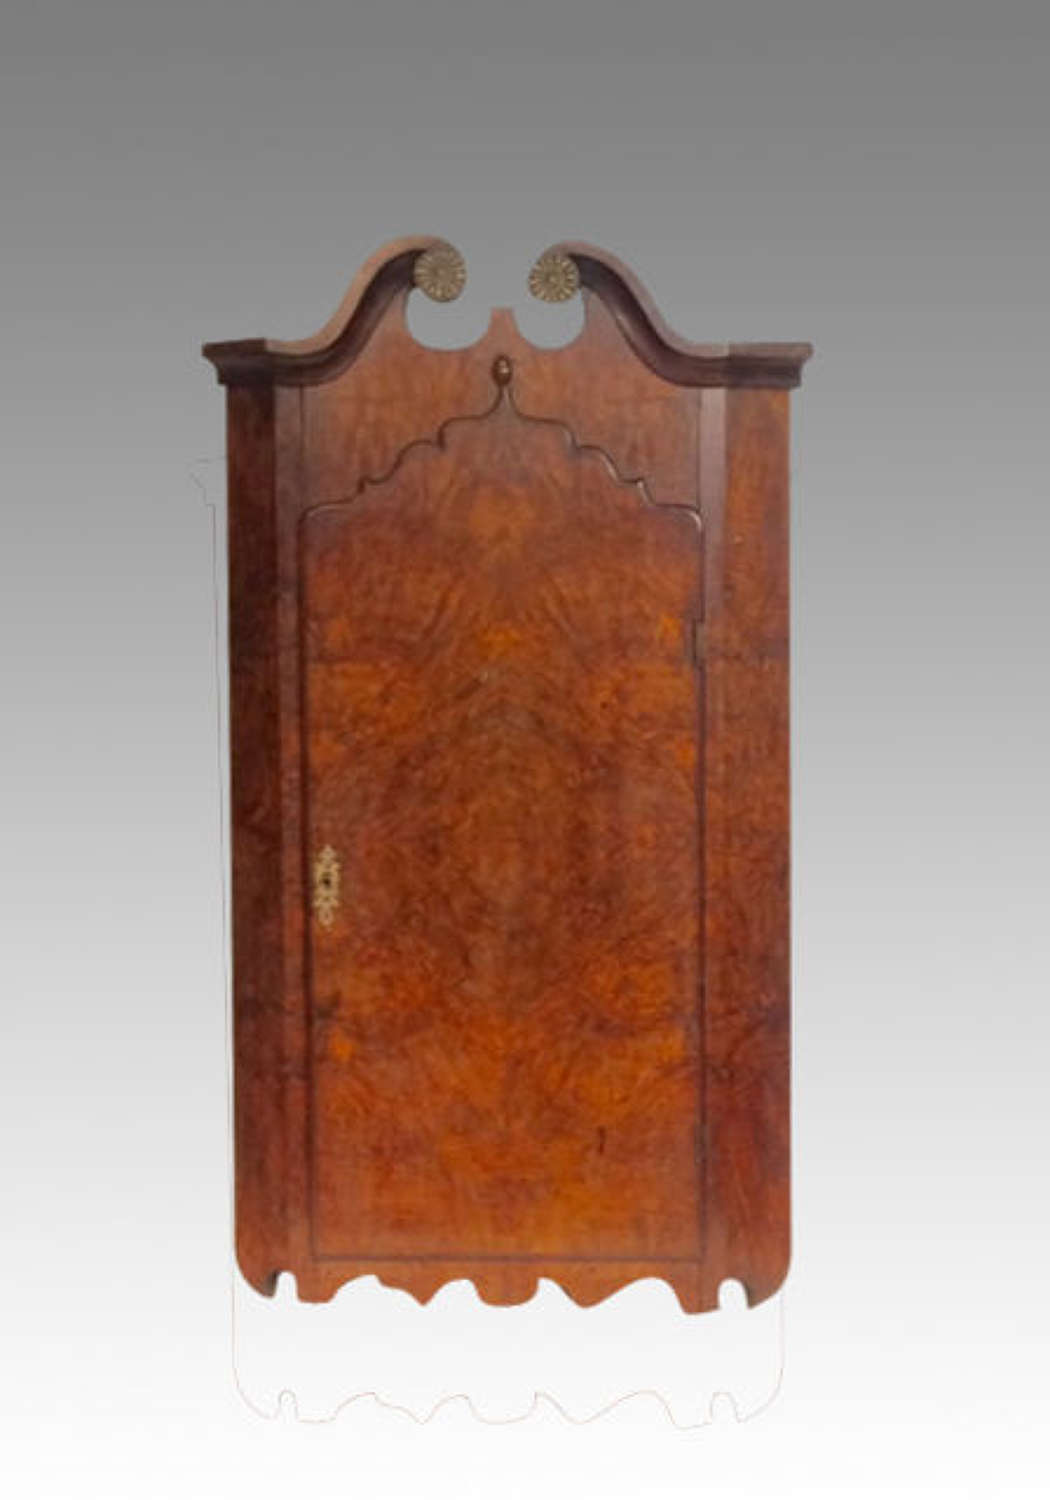 Georgian burr walnut hanging corner cupboard.